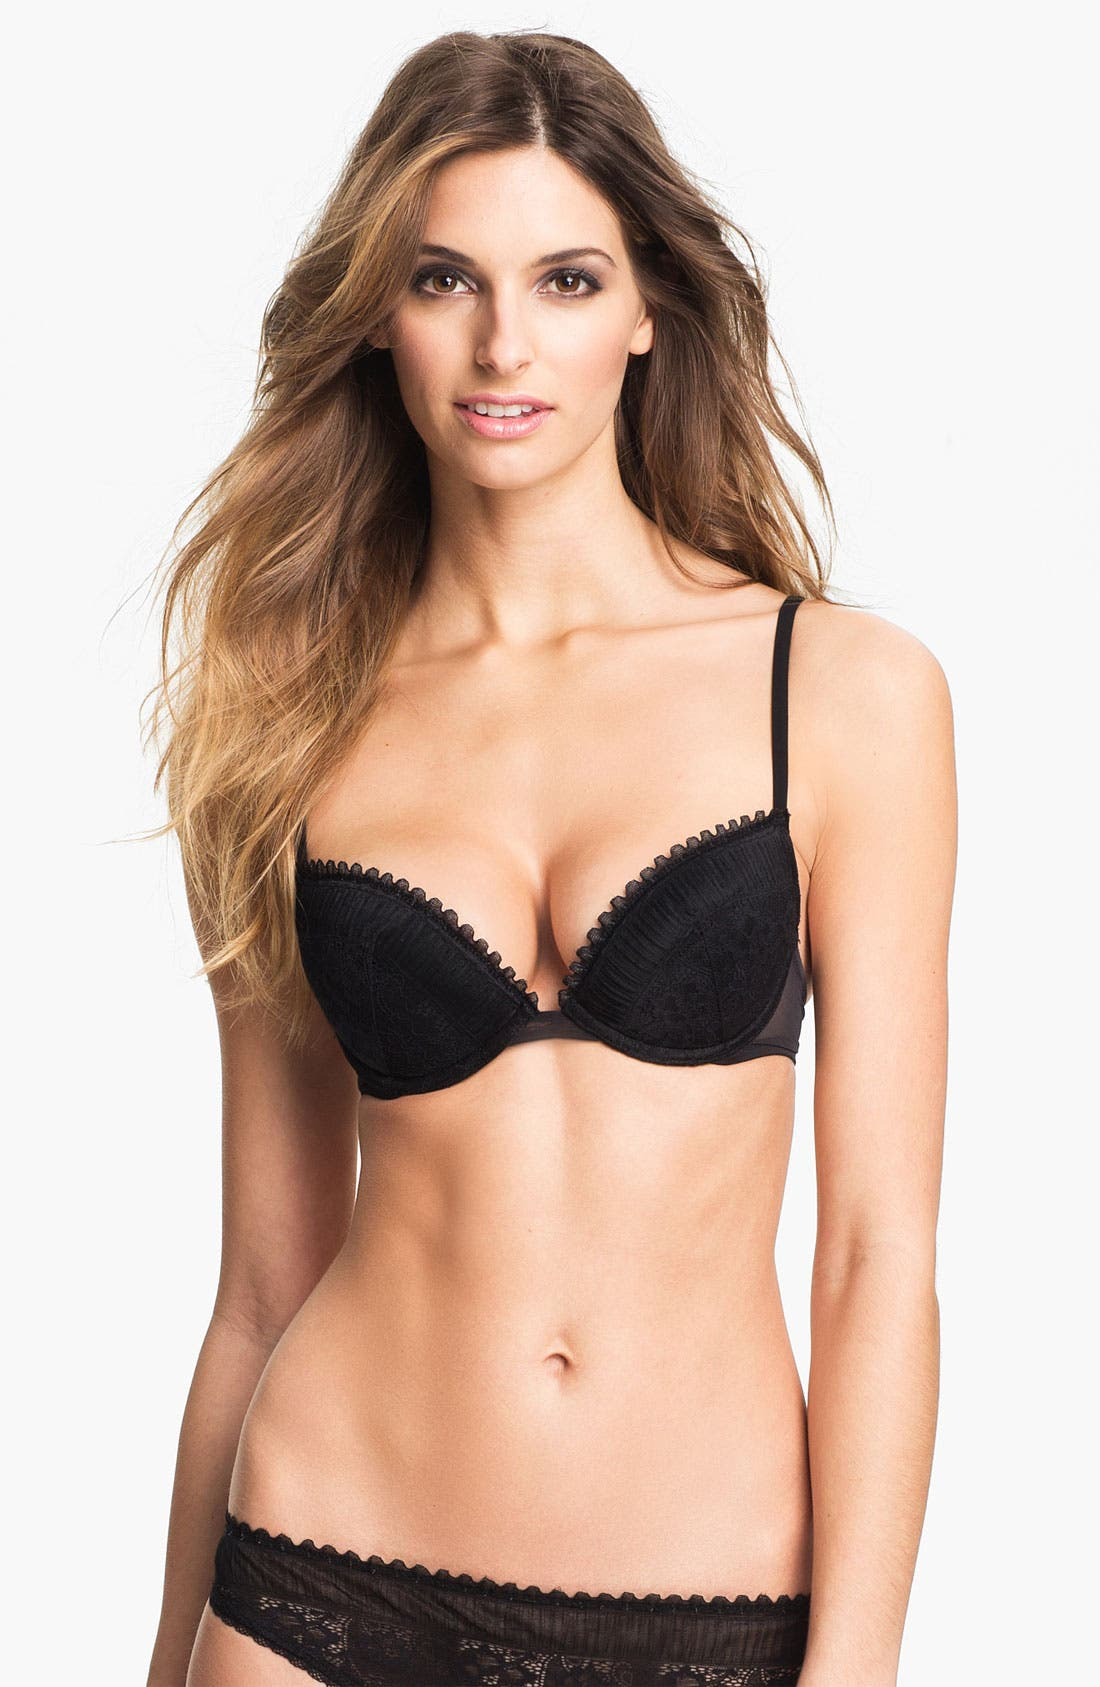 Main Image - La Perla 'Looking for Love' Underwire Push-Up Bra